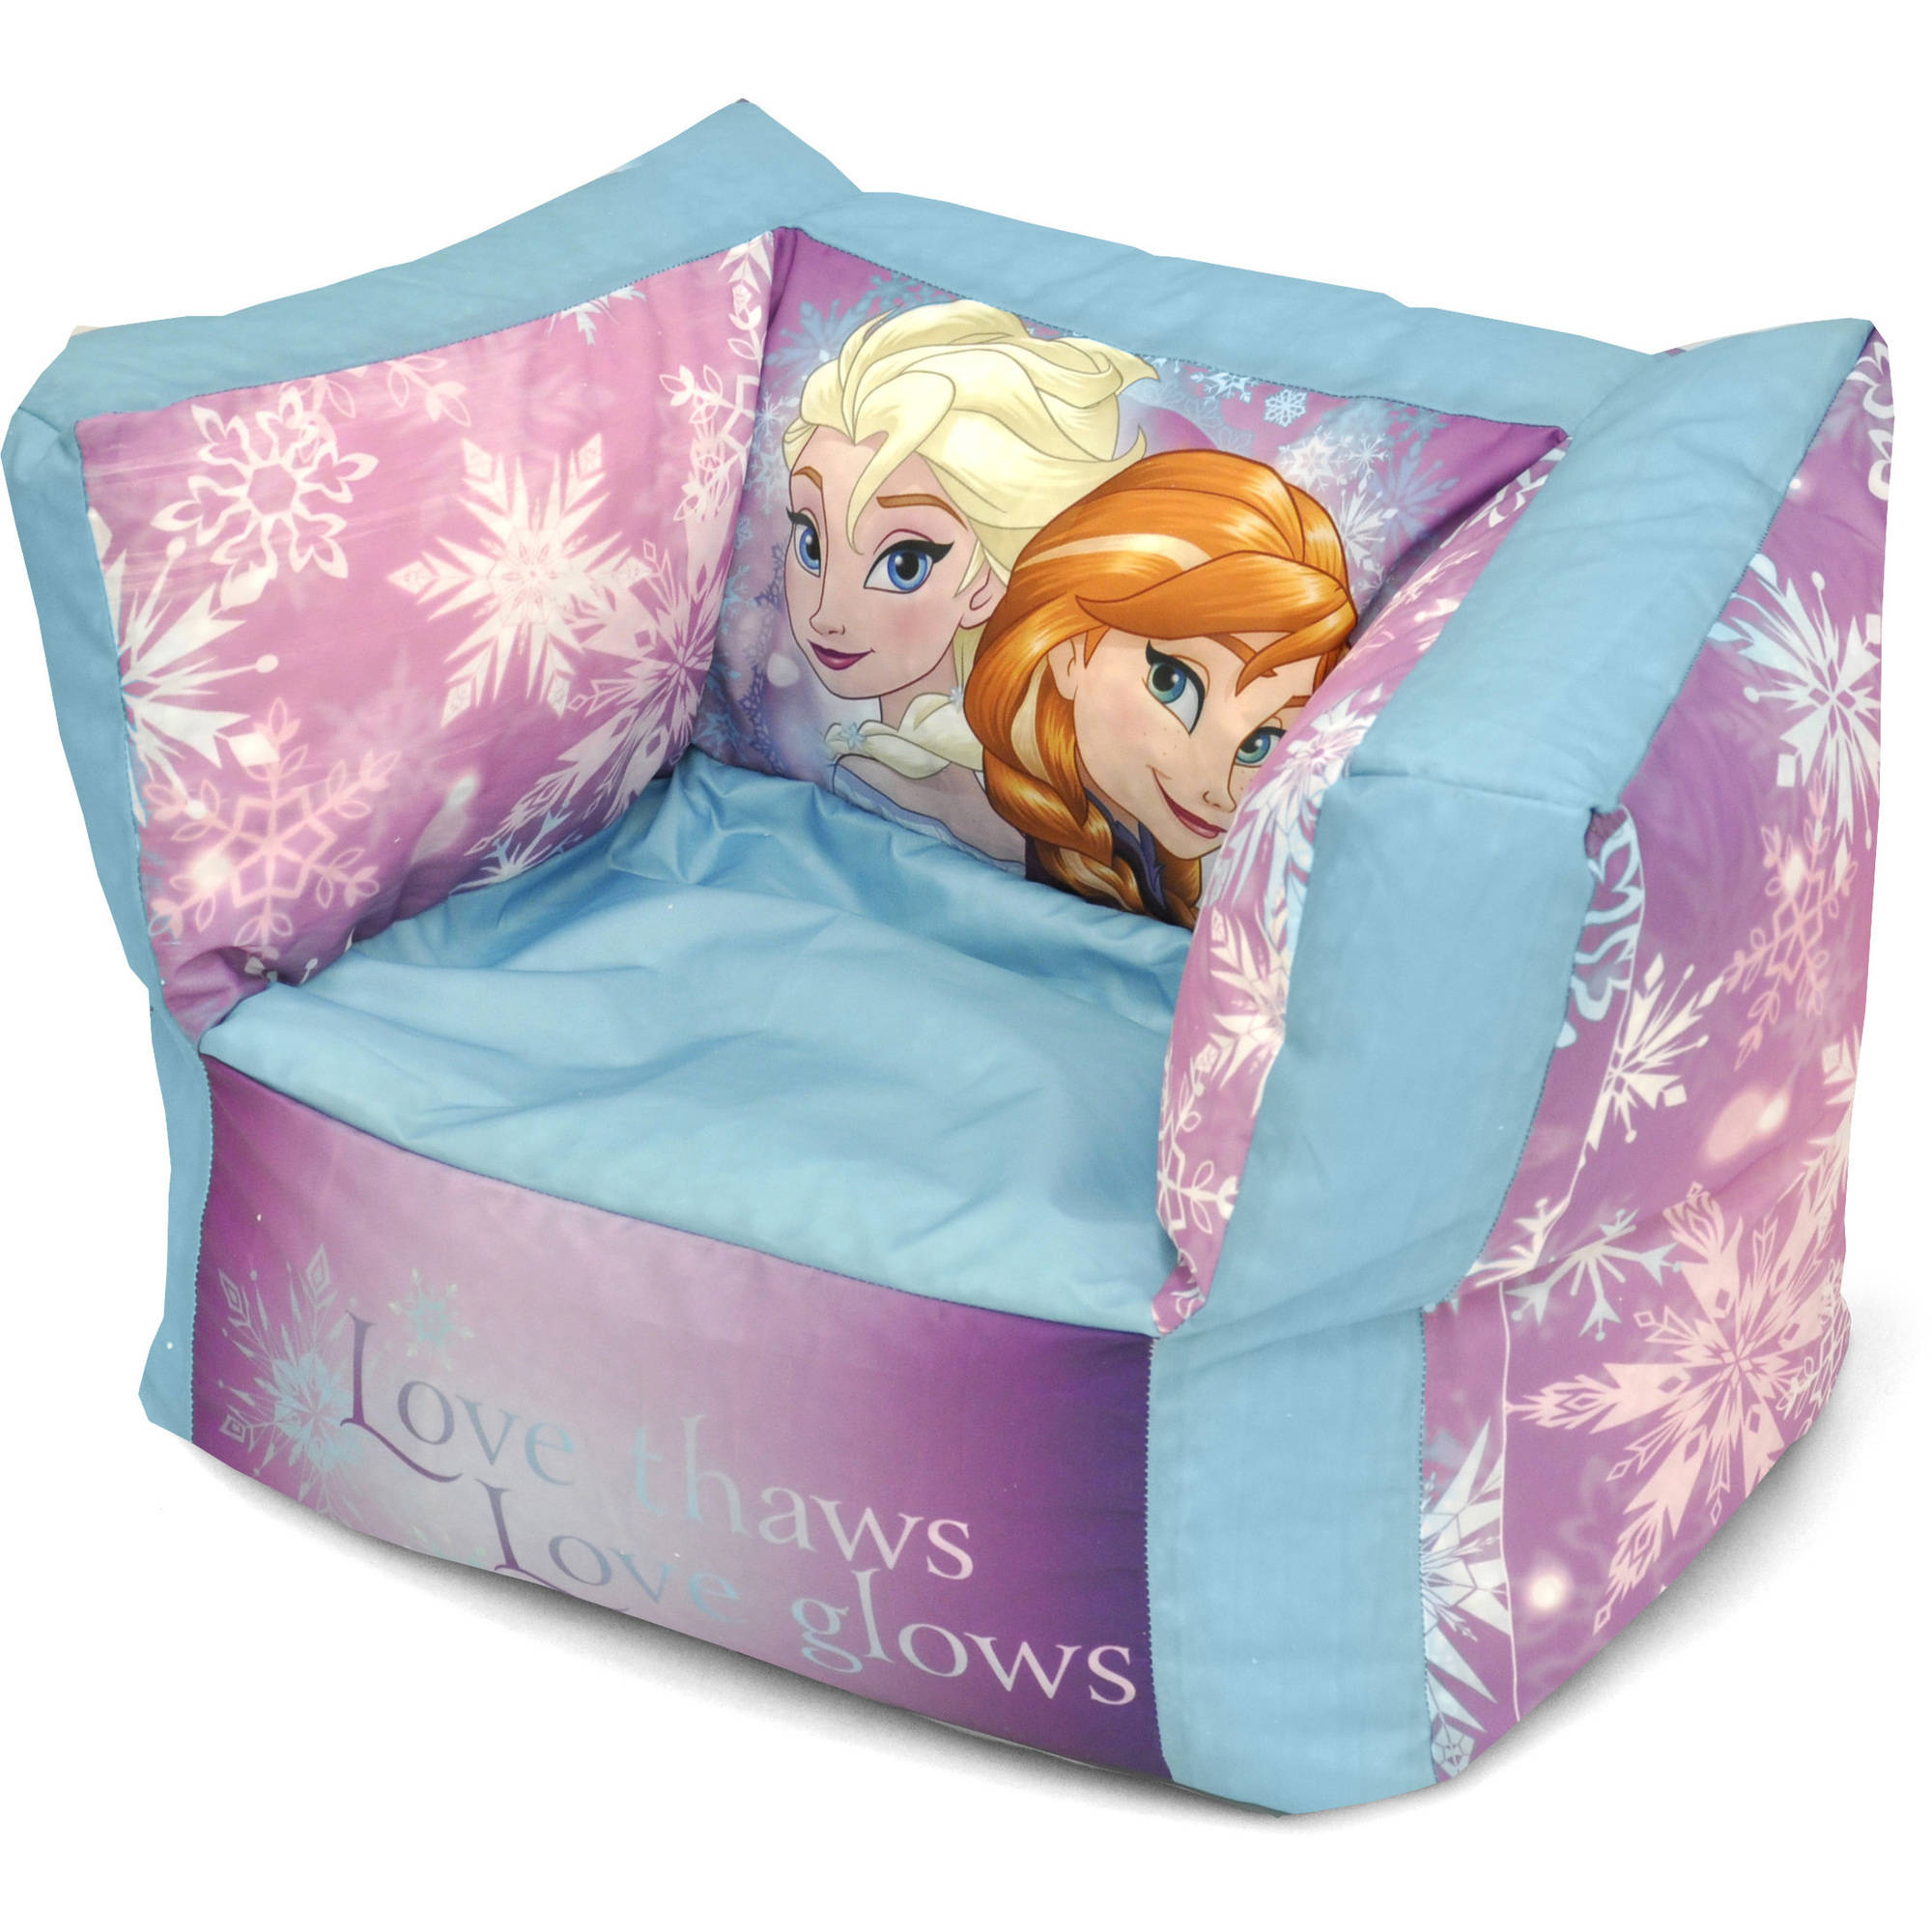 Doc McStuffins Square Bean Bag Chair - Walmart.com